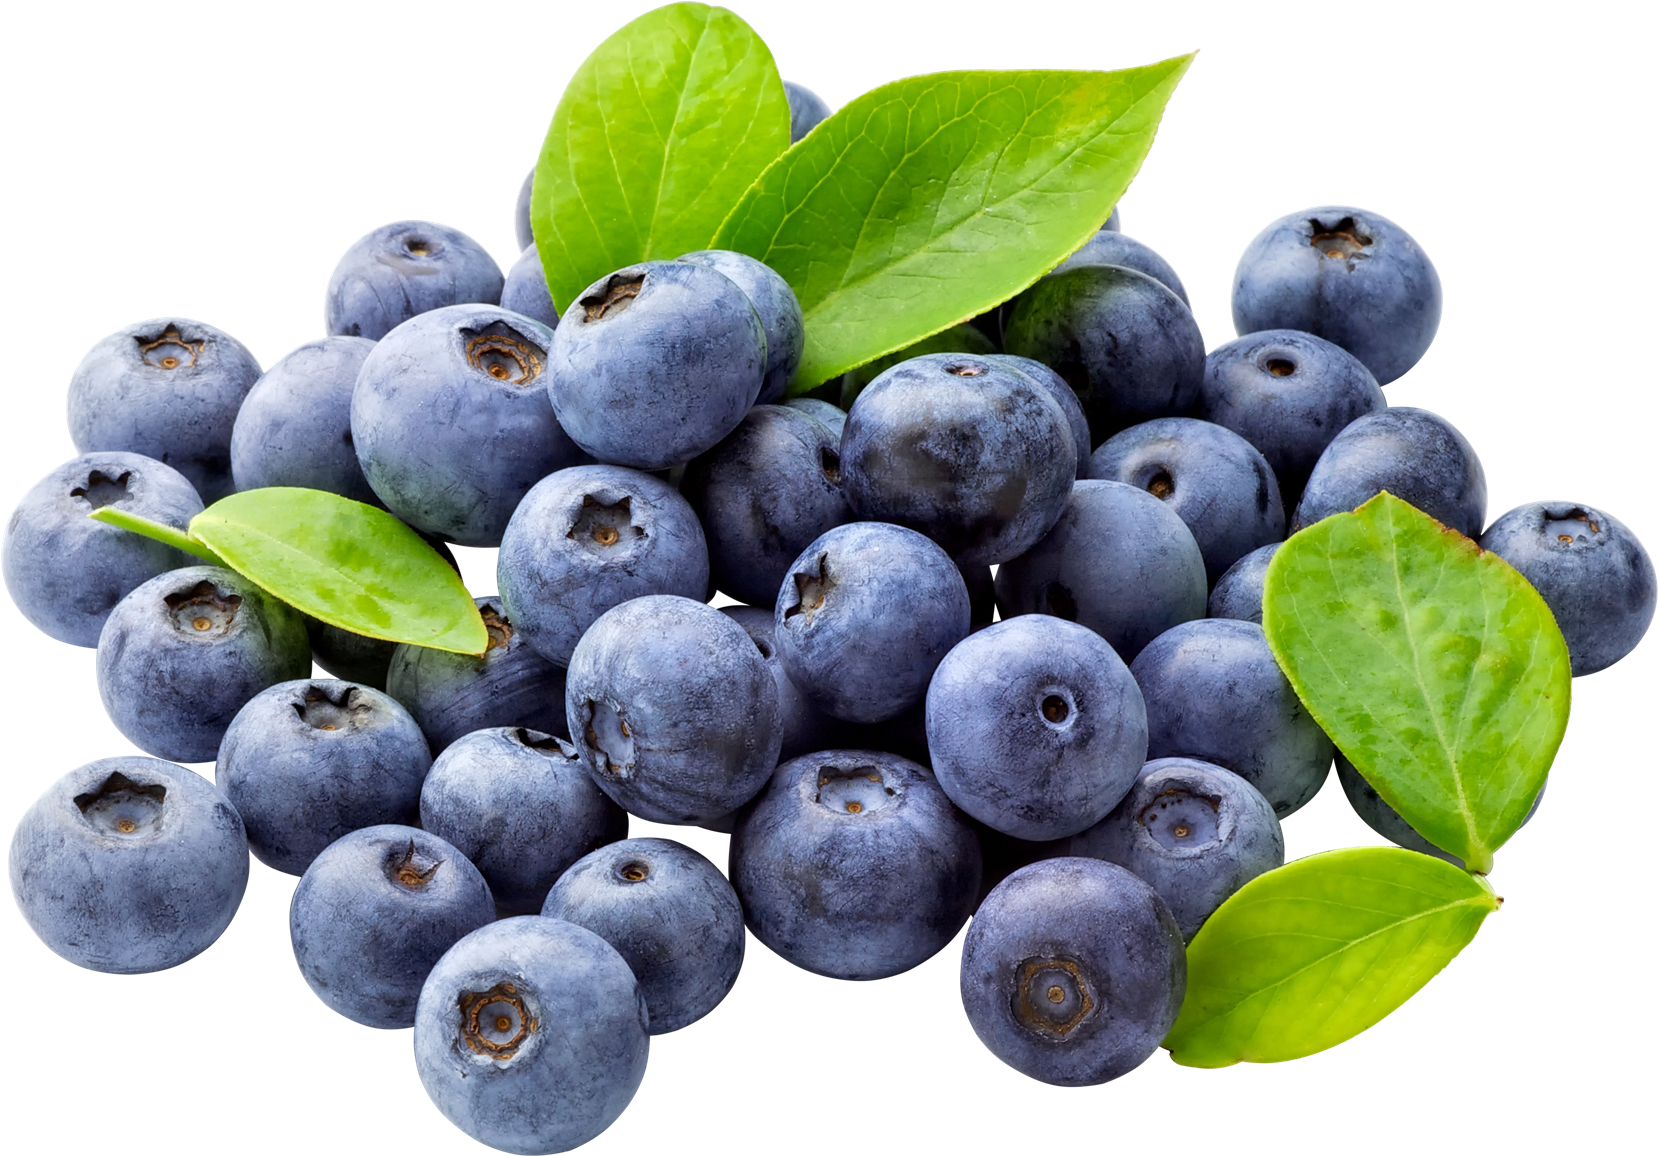 Blueberries clipart transparent background. Blueberry png free download